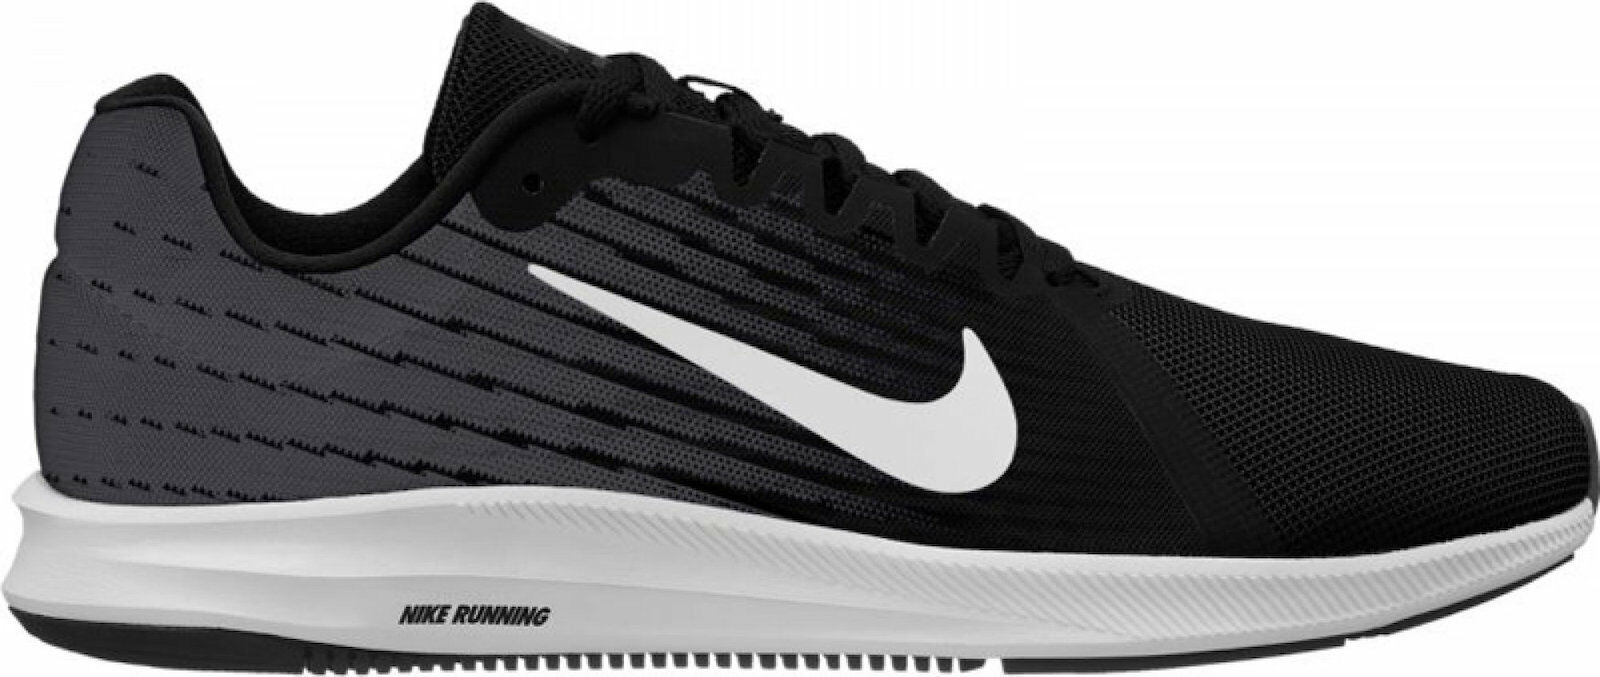 Nike Downshifter 8 908984-001  Cheap and fashionable